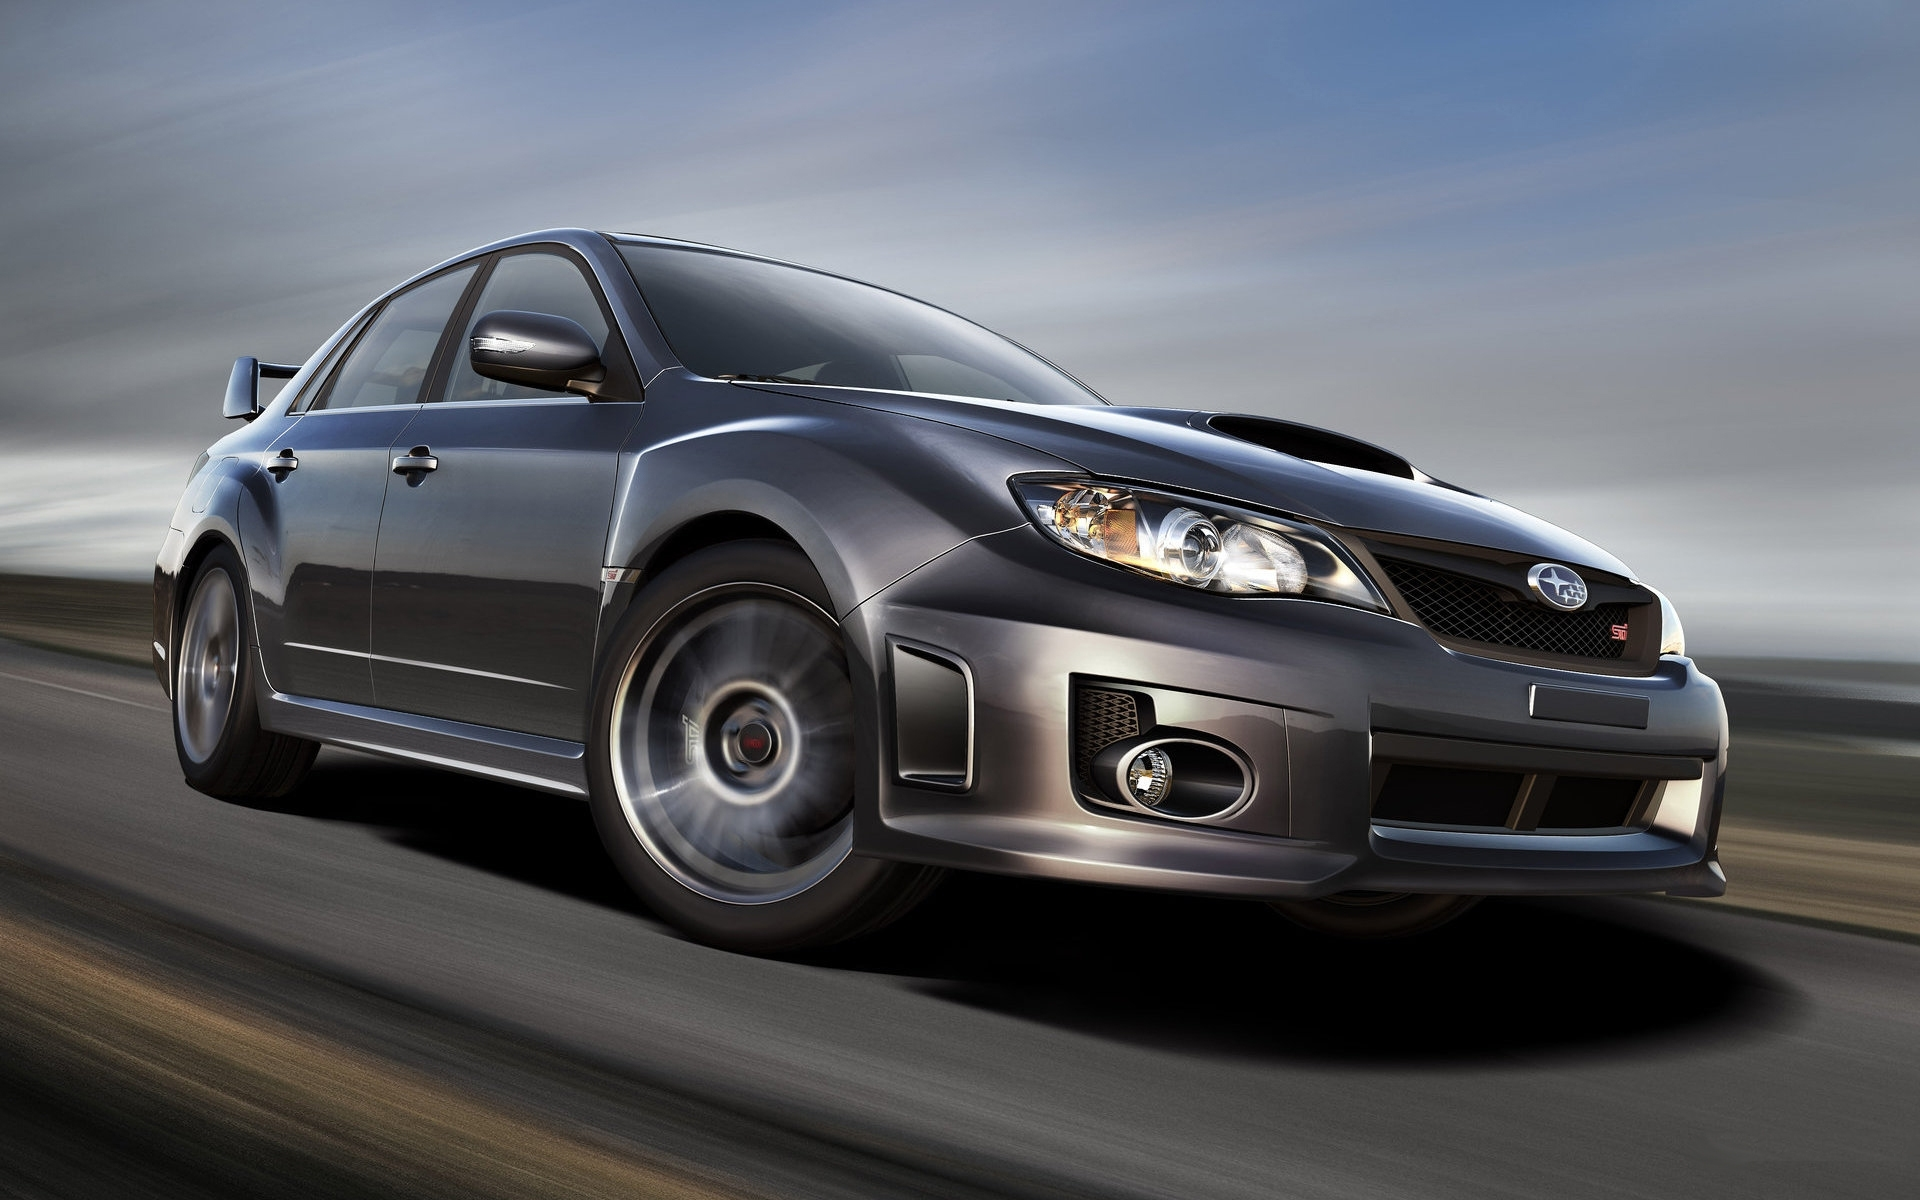 48025 download wallpaper Transport, Auto, Subaru screensavers and pictures for free